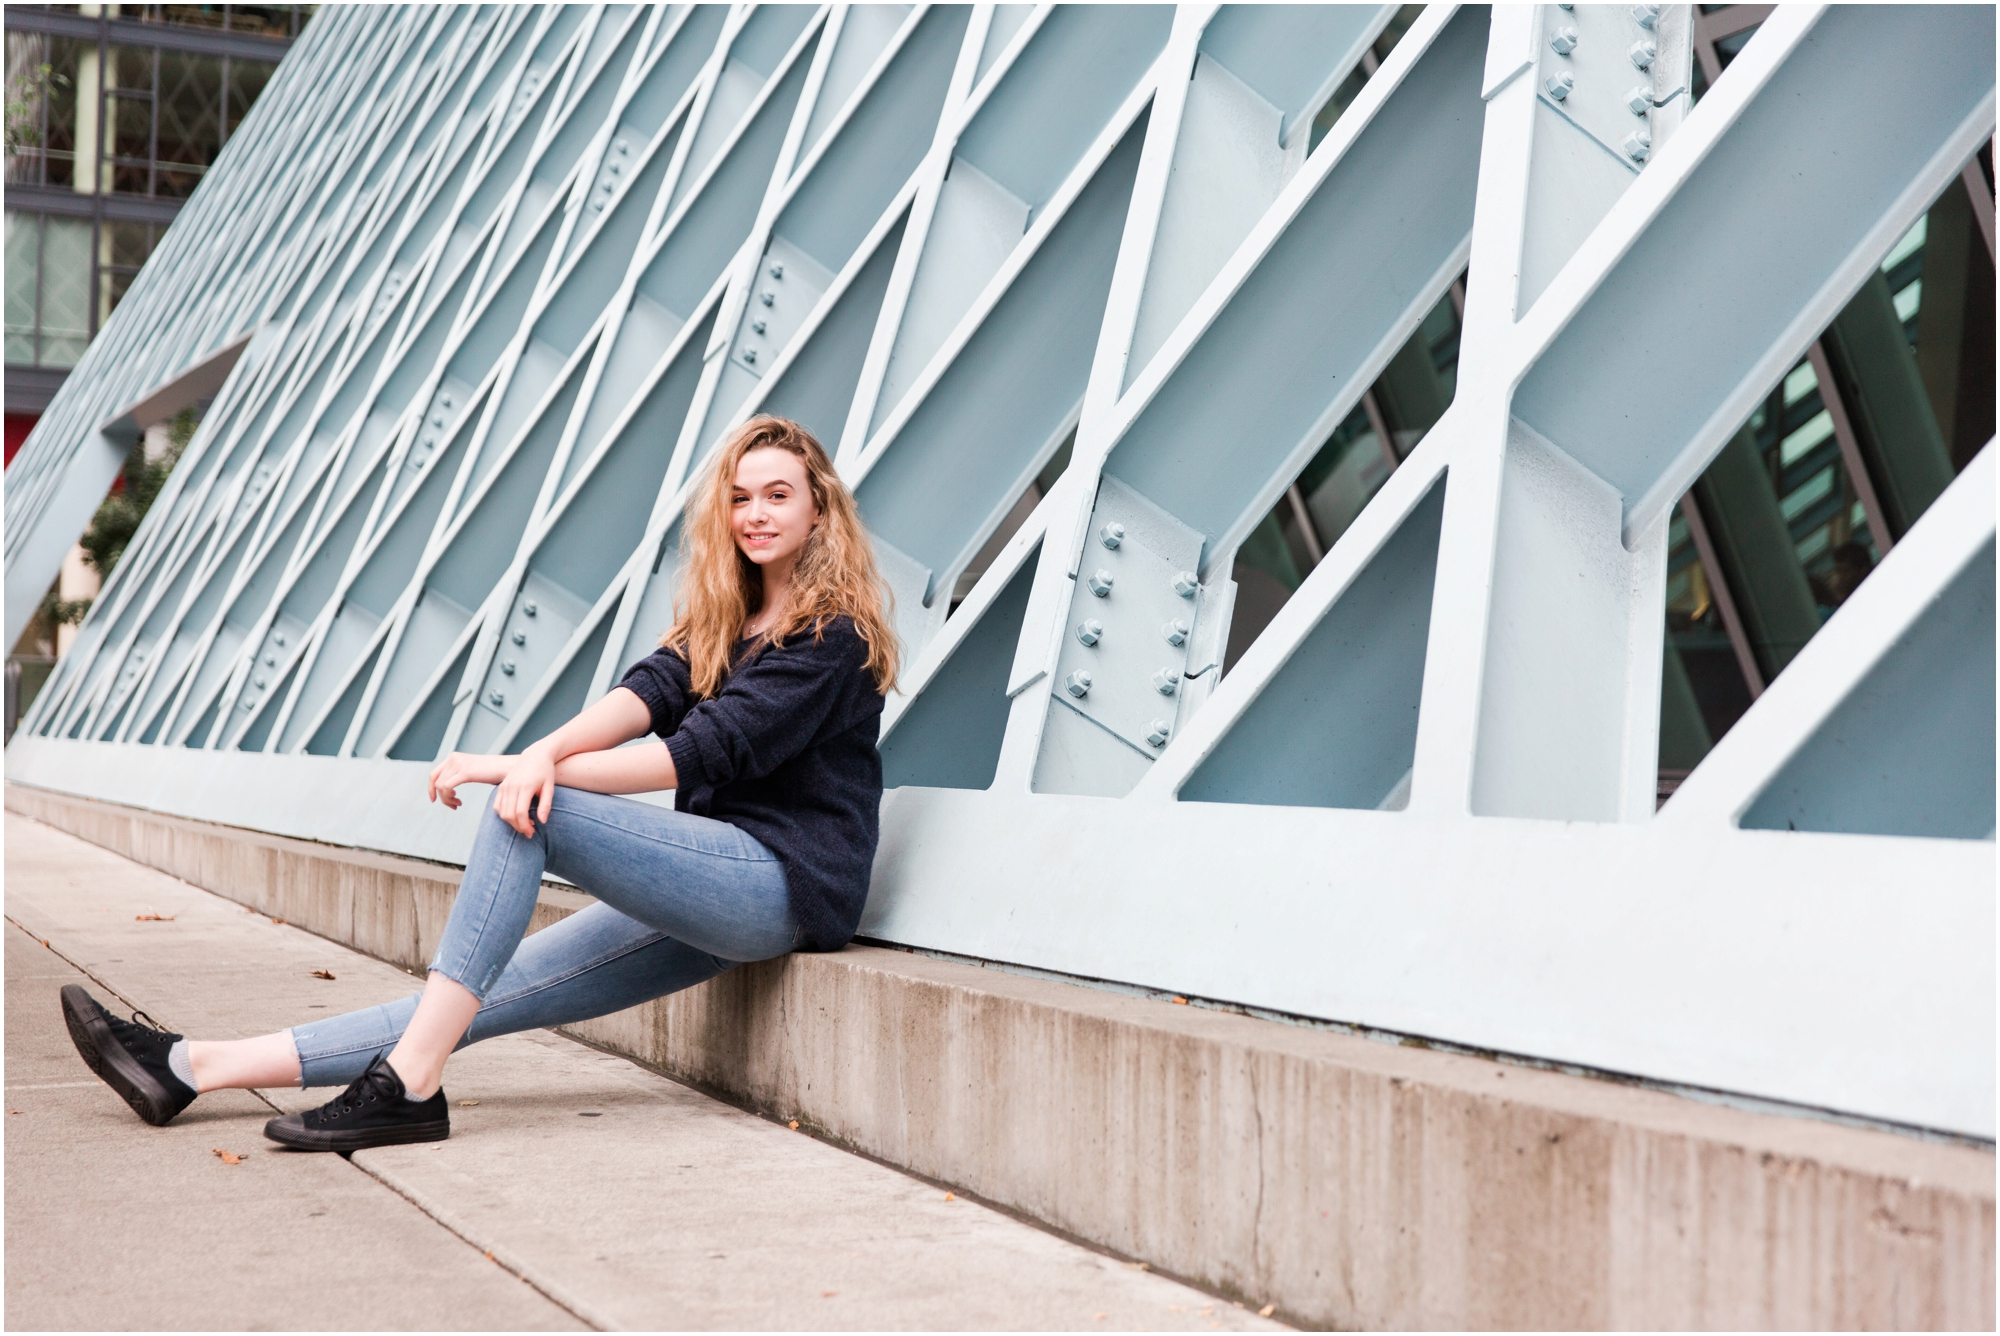 Seattle Library senior portraits by Briana Calderon Photography based in the Greater Seattle & Tacoma, WA_0742.jpg